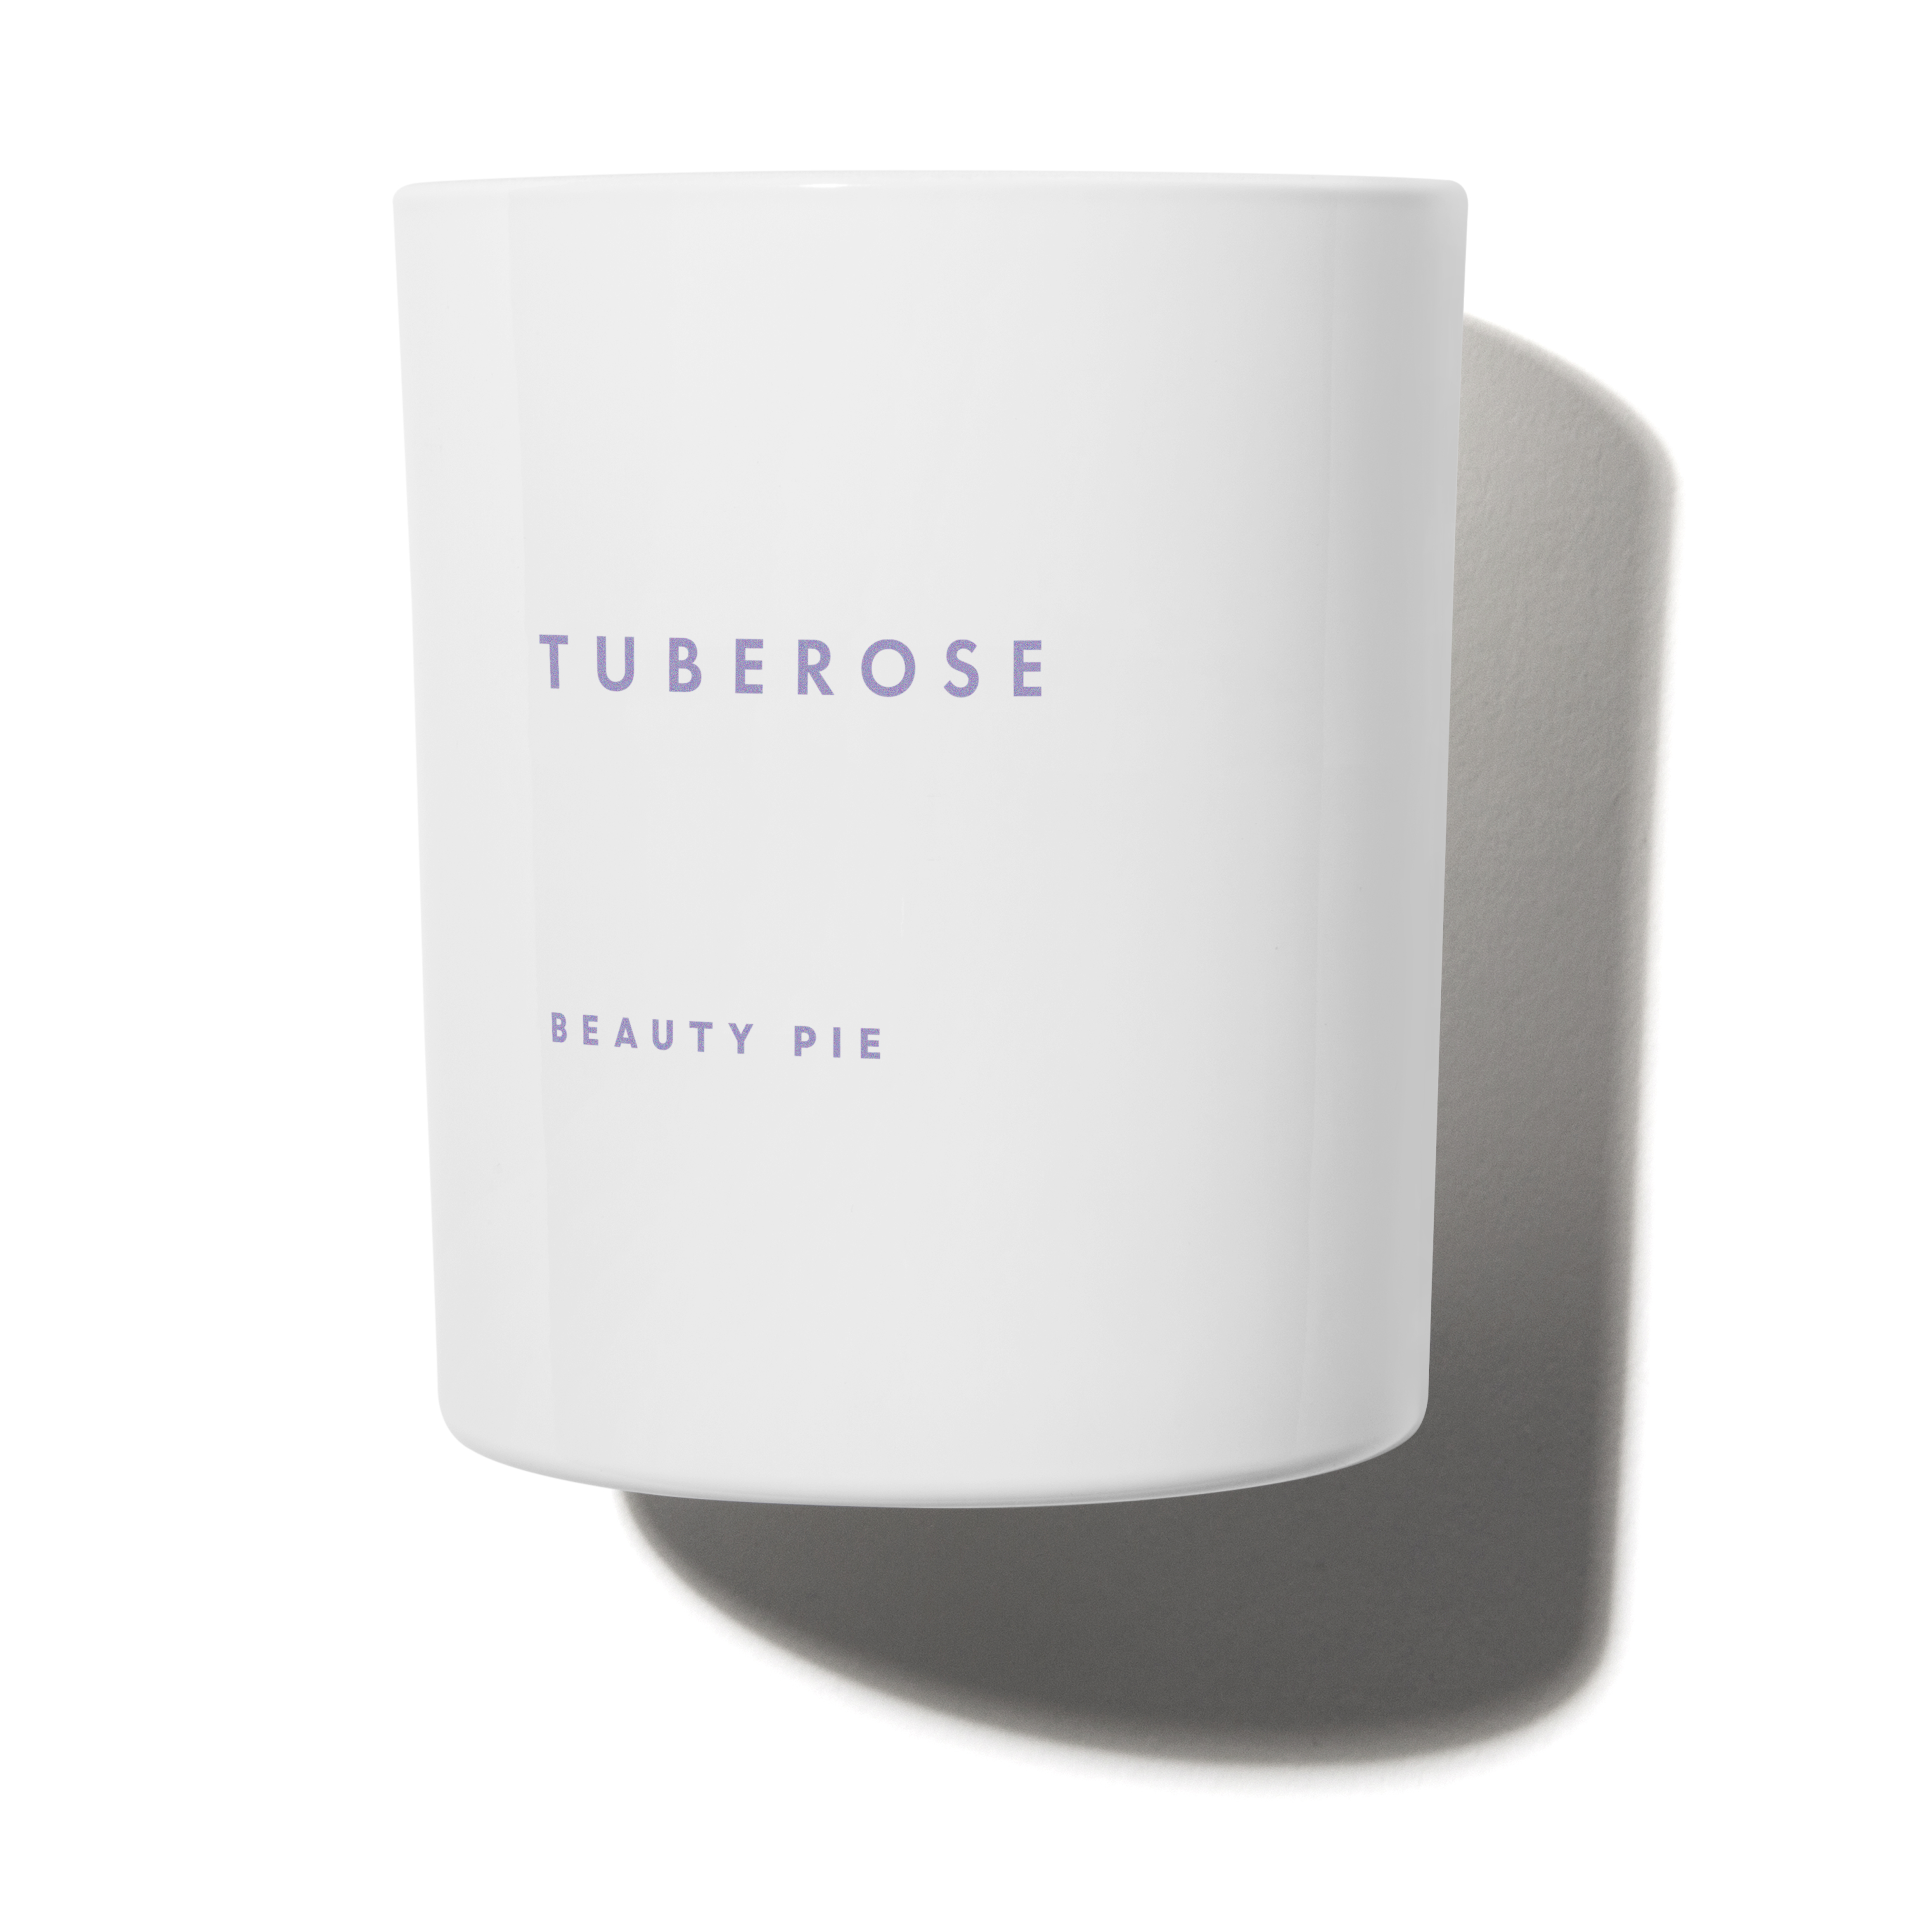 Tuberose Luxury Scented Candle by Beauty Pie